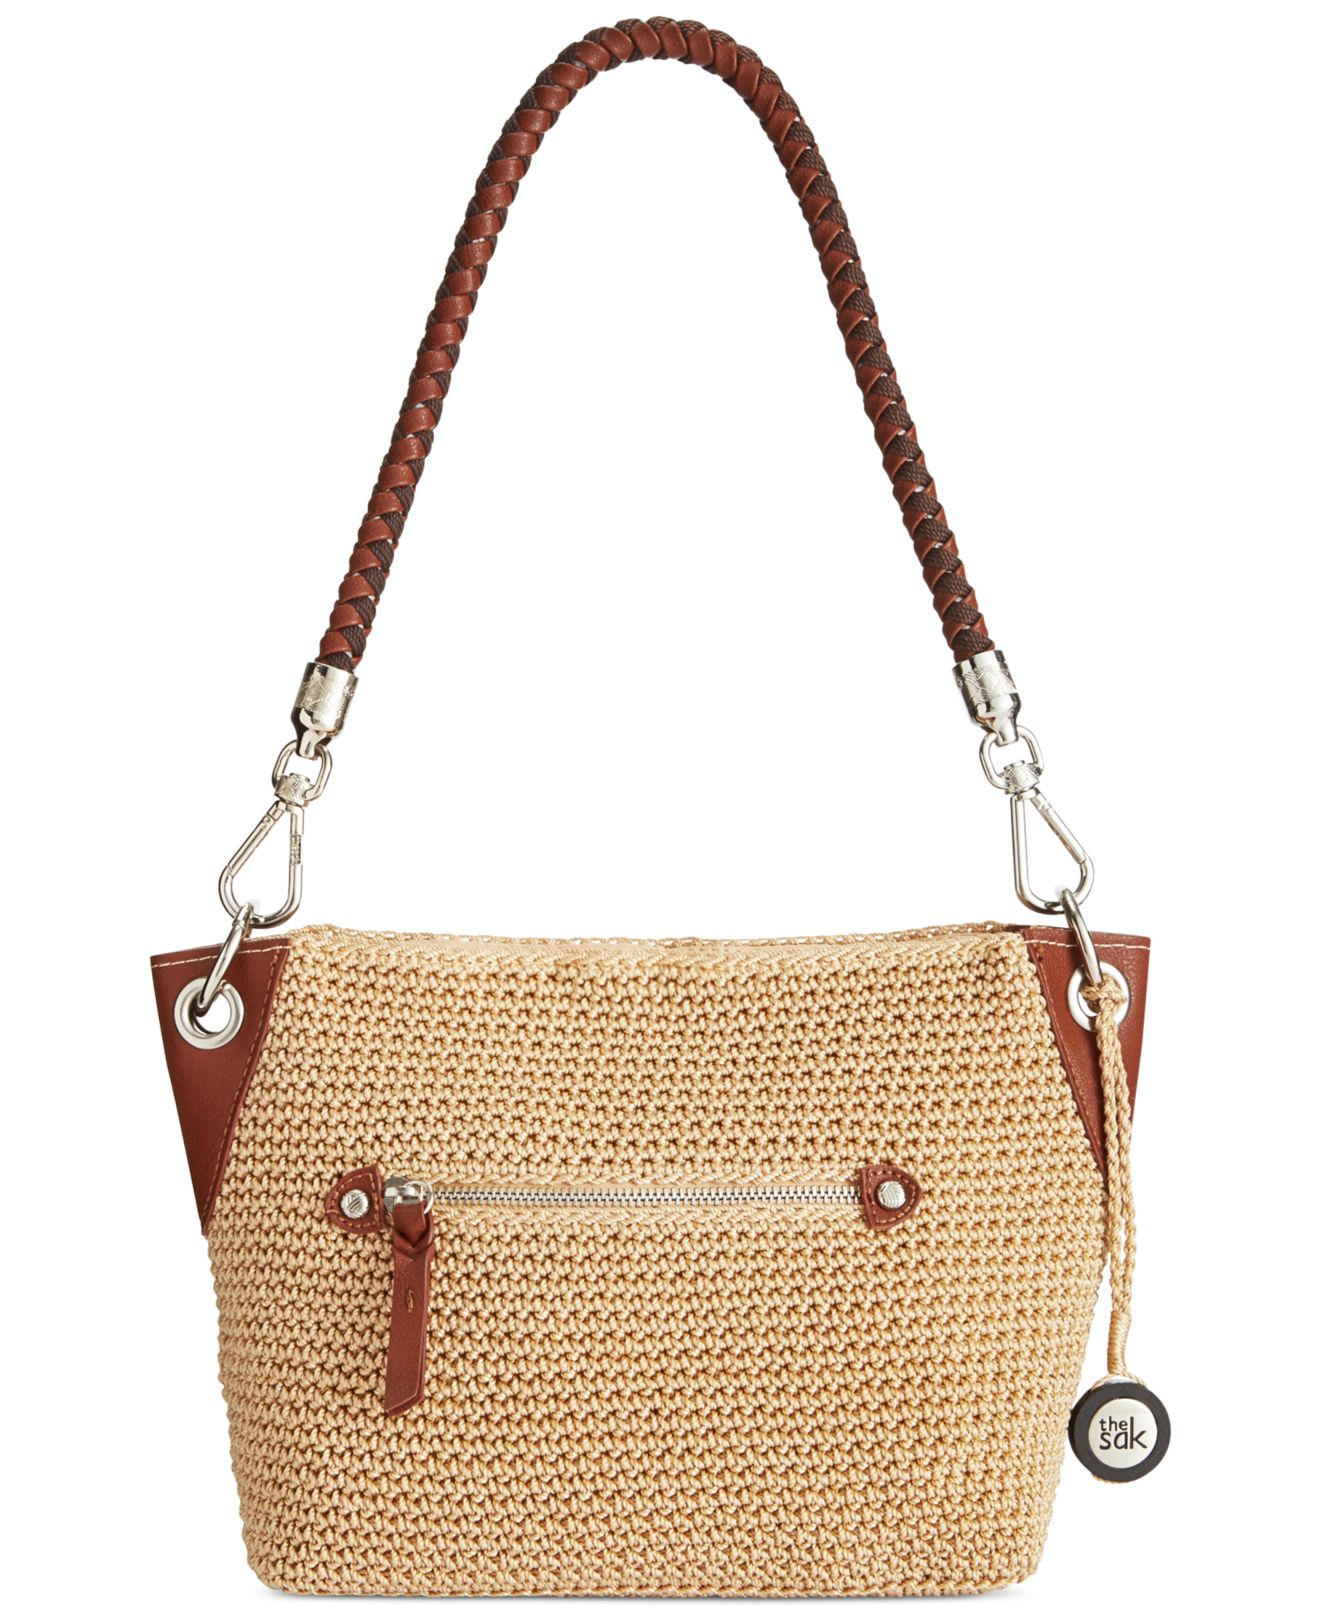 The Sak Bags Crochet : The sak Portola Crochet Demi Bag in Beige (Canyon Stripe) Lyst